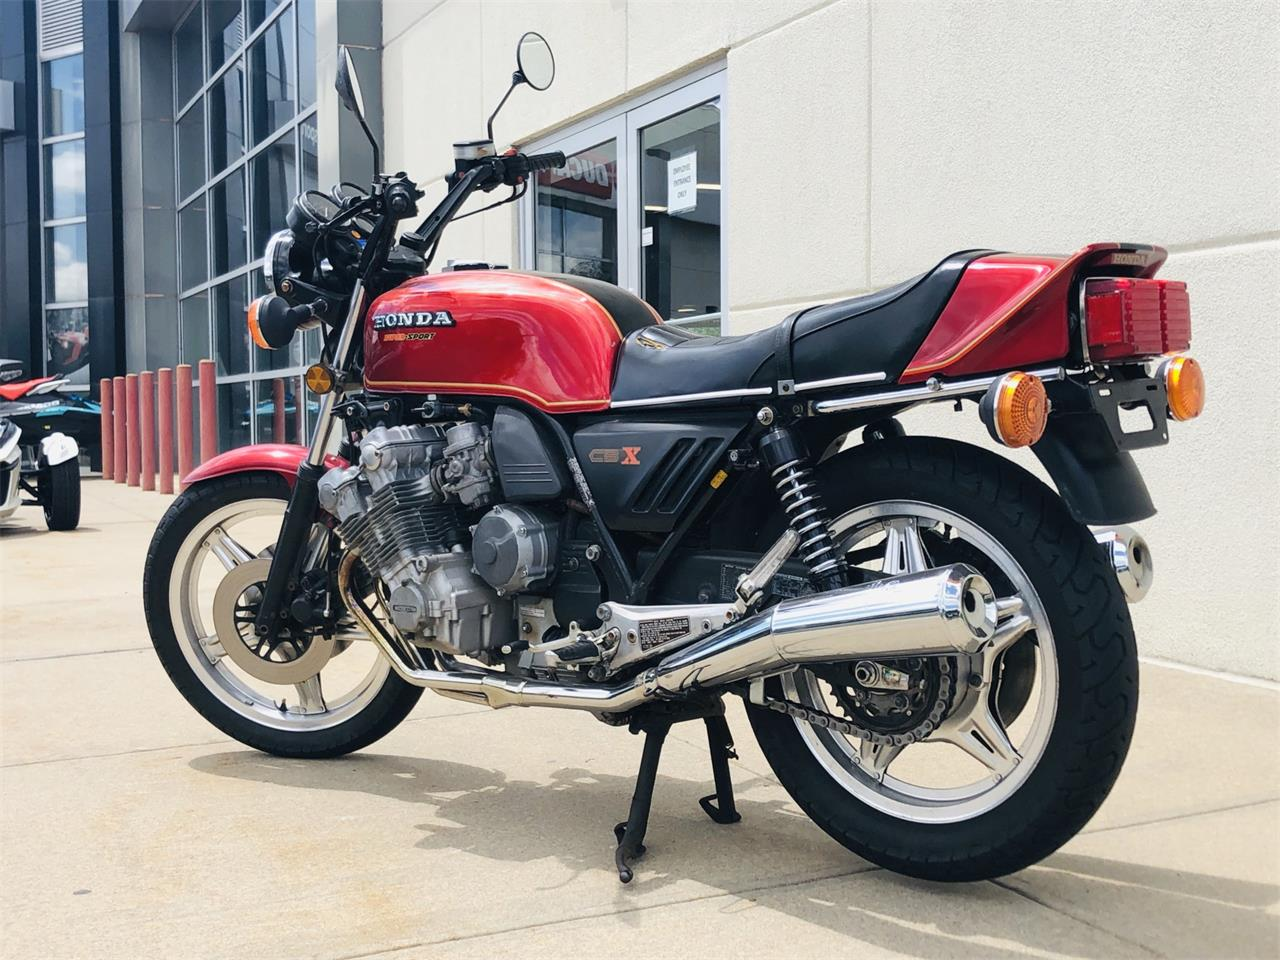 1979 Honda Motorcycle (CC-1238791) for sale in Metuchen, New Jersey